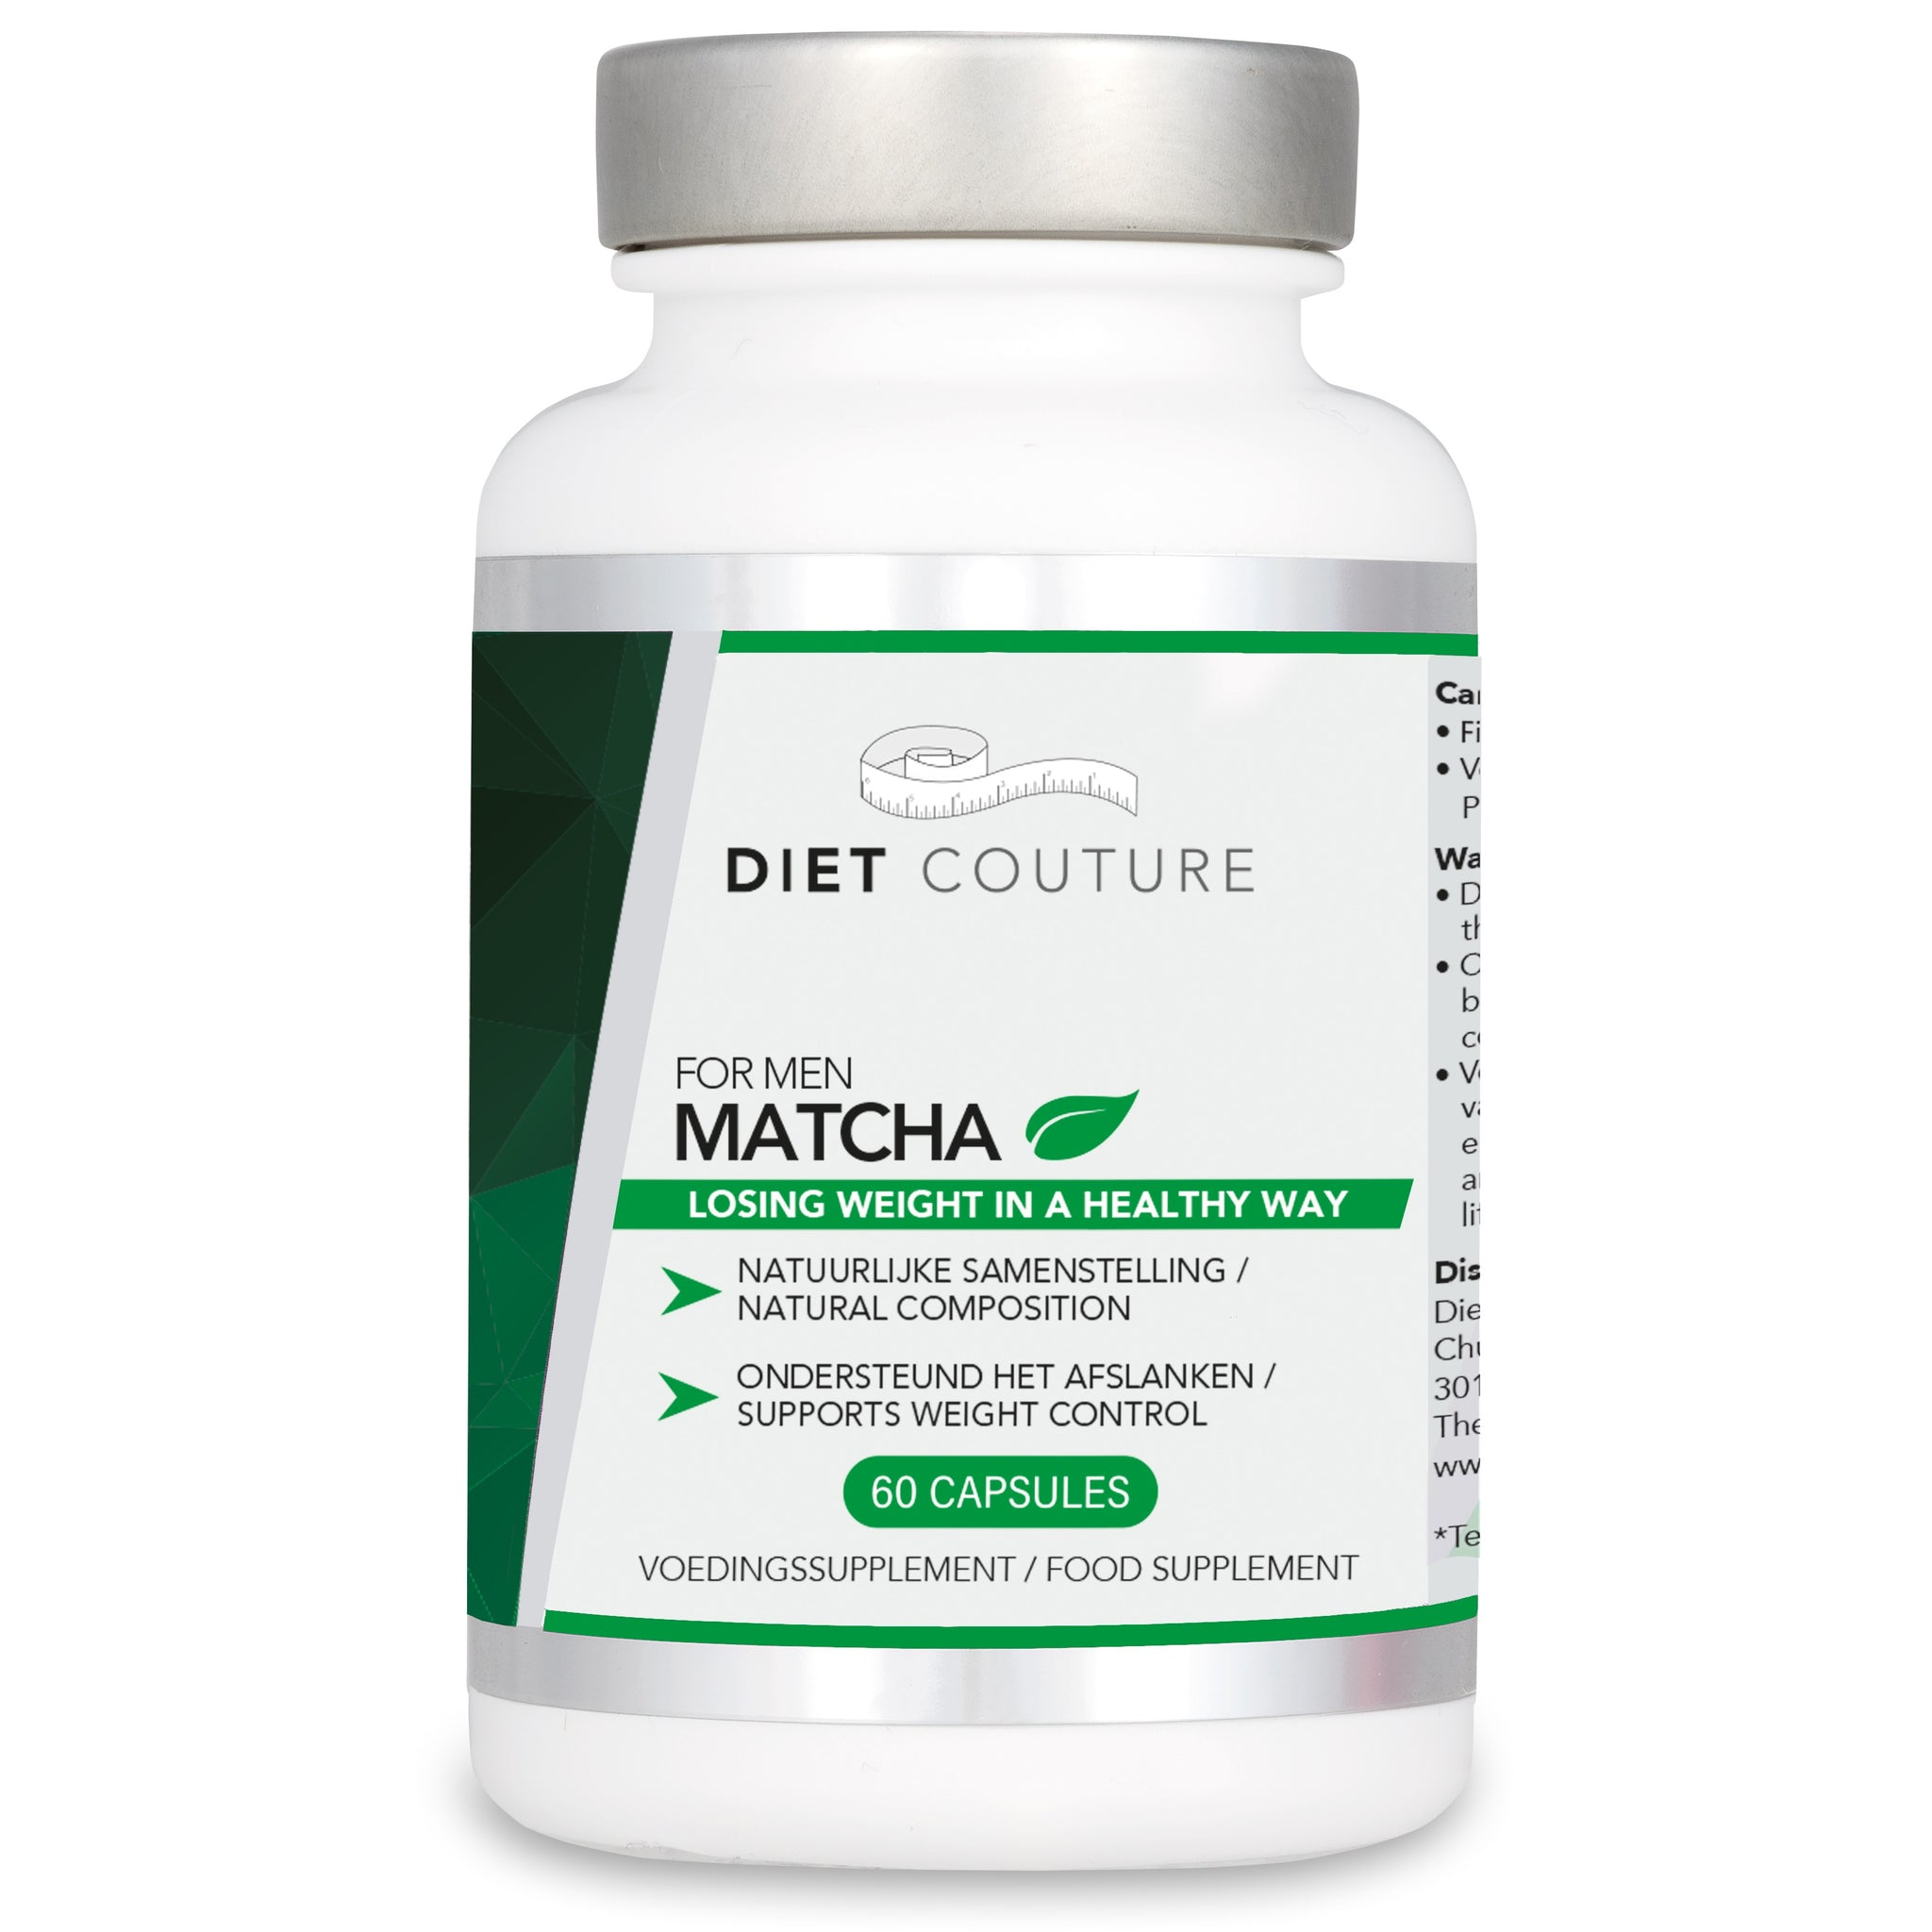 NEW: Matcha for men